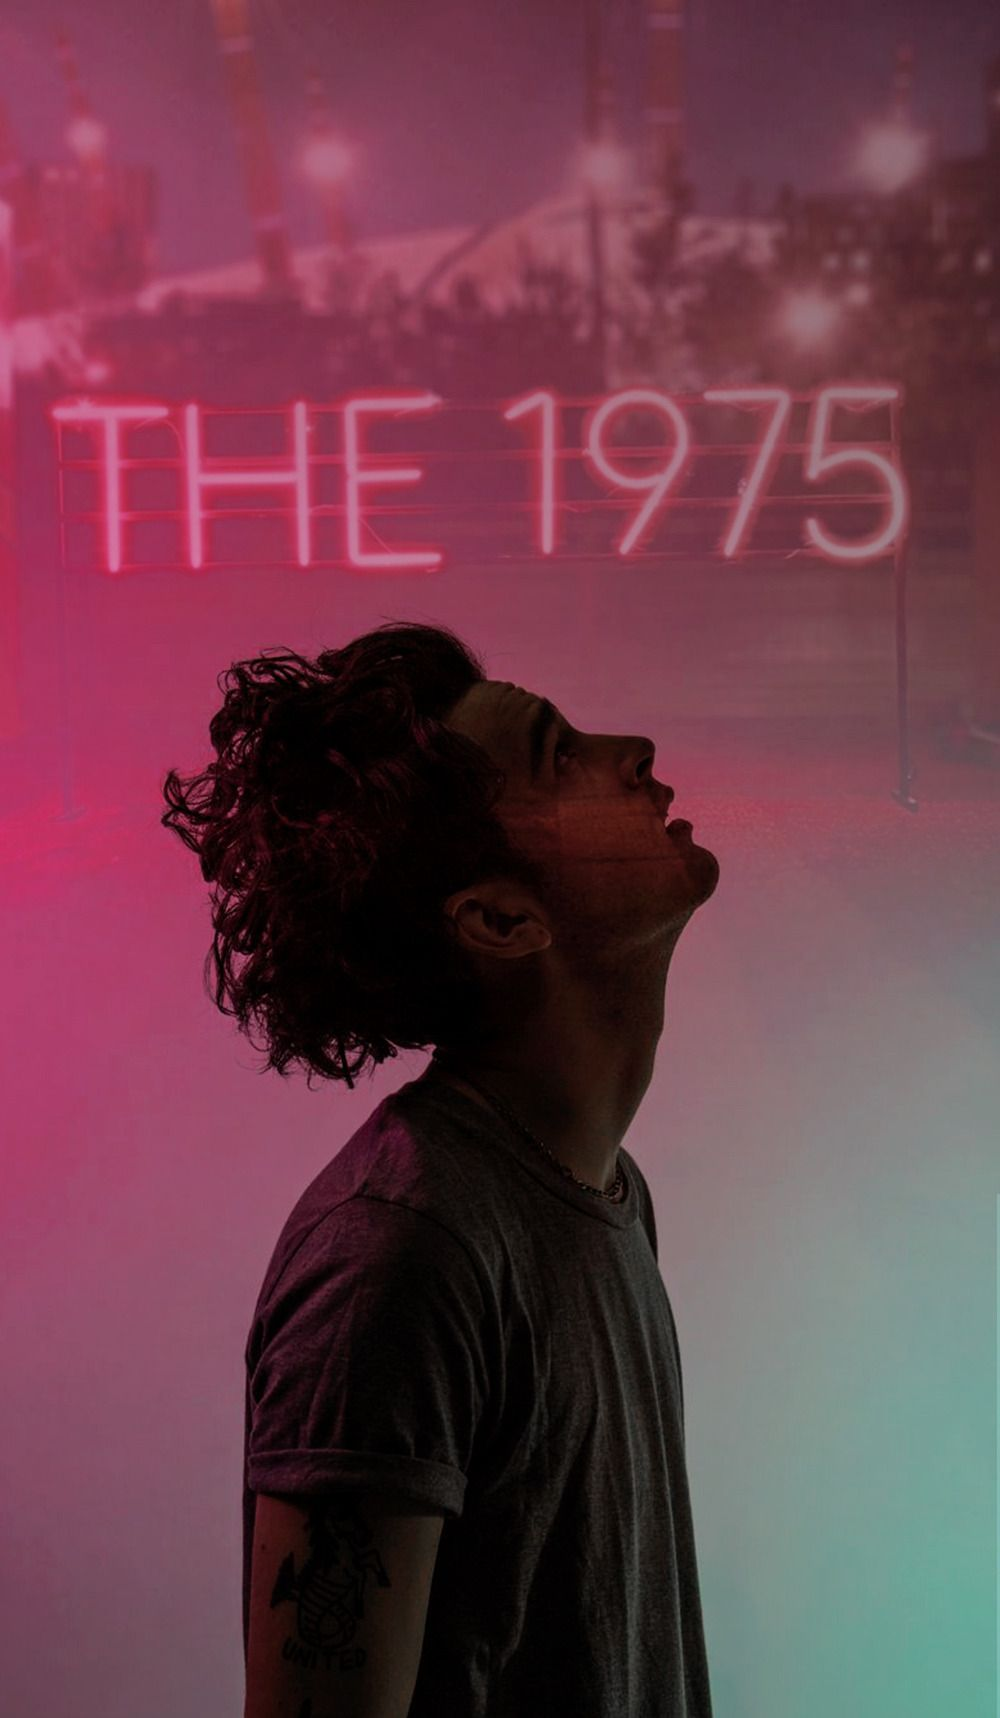 The 1975 Matty Healy Wallpaper me in 2019 The 1975 1000x1718